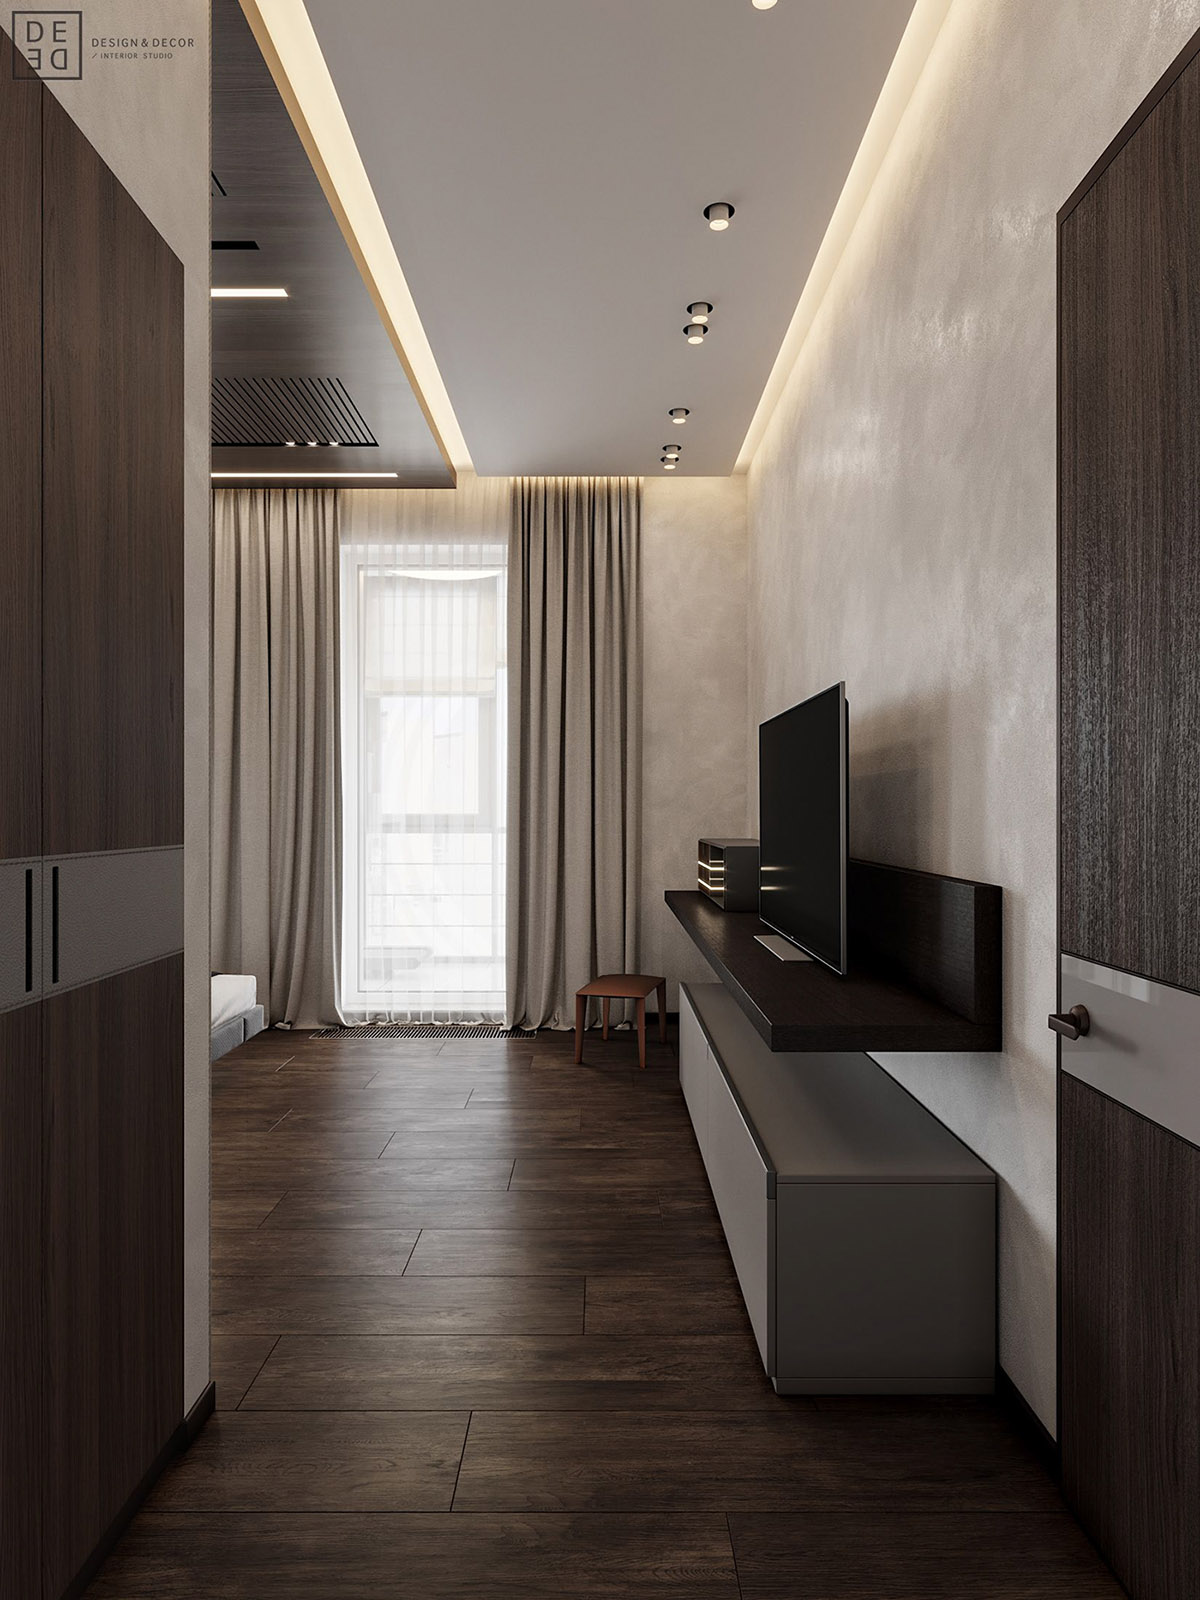 Luxurious Interior With Wood Slat Walls images 13